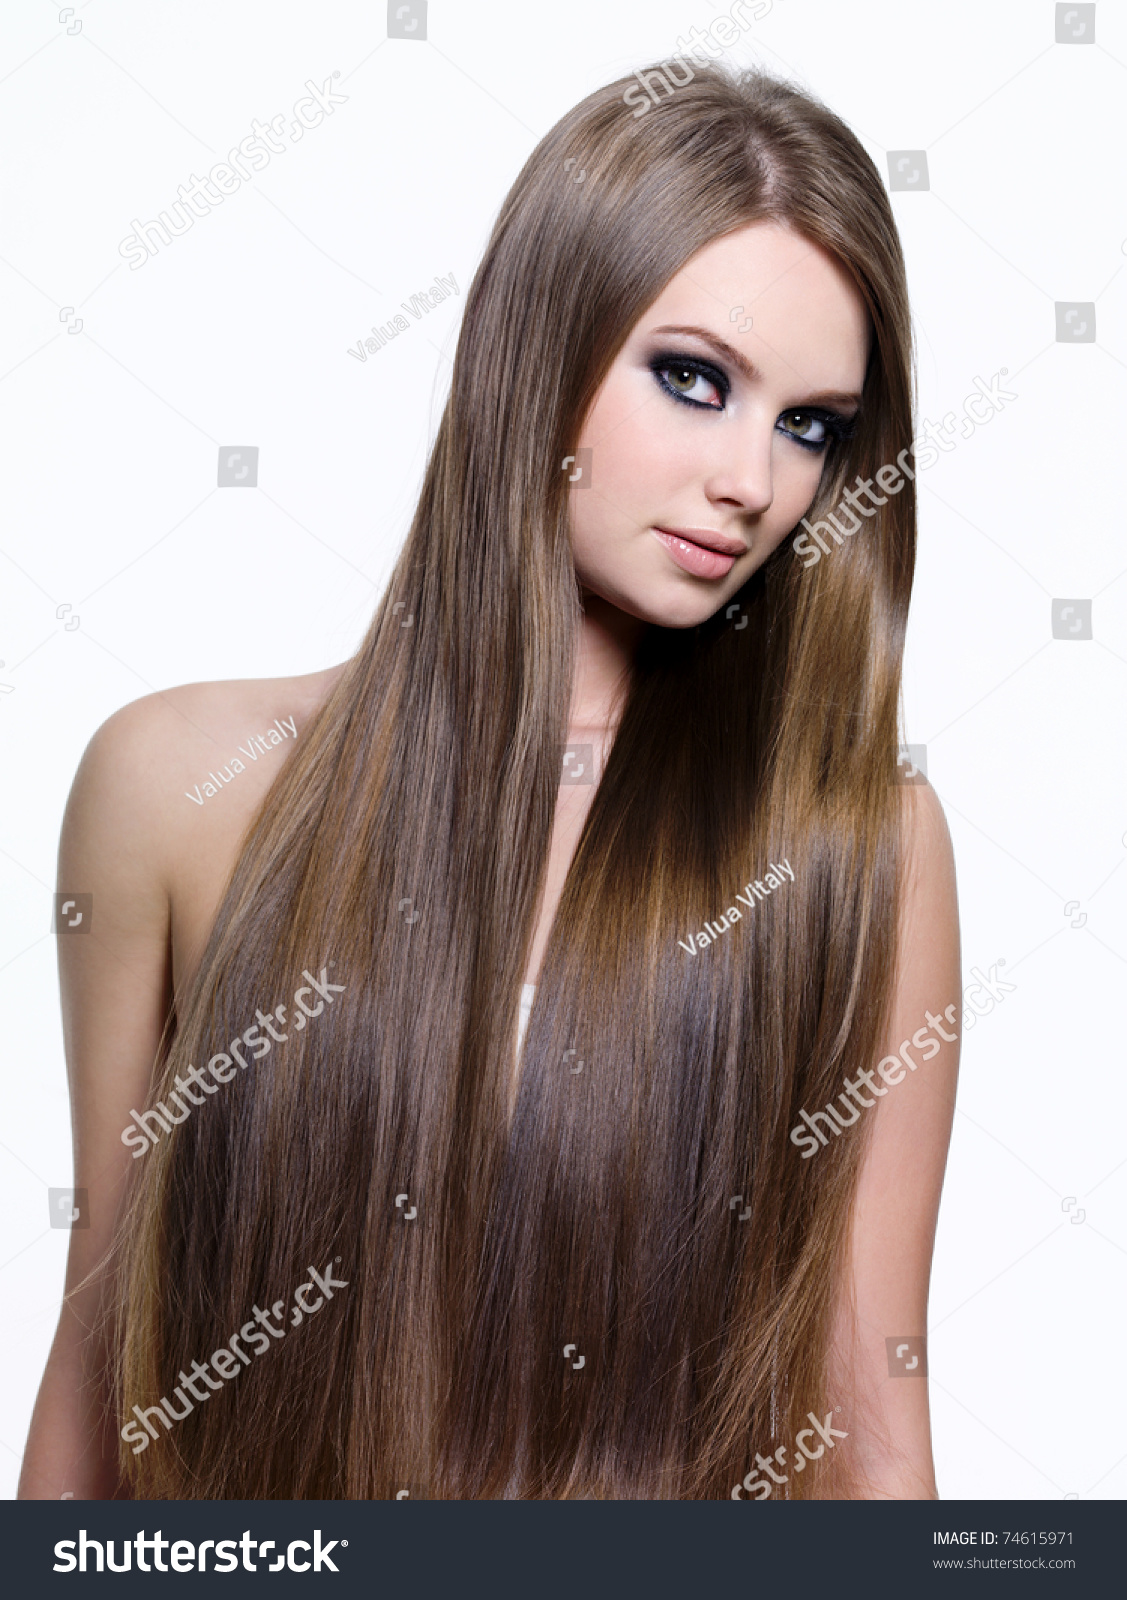 Beautiful Smooth Long Straight Hair Young Stock Photo 74615971 - Shutterstock